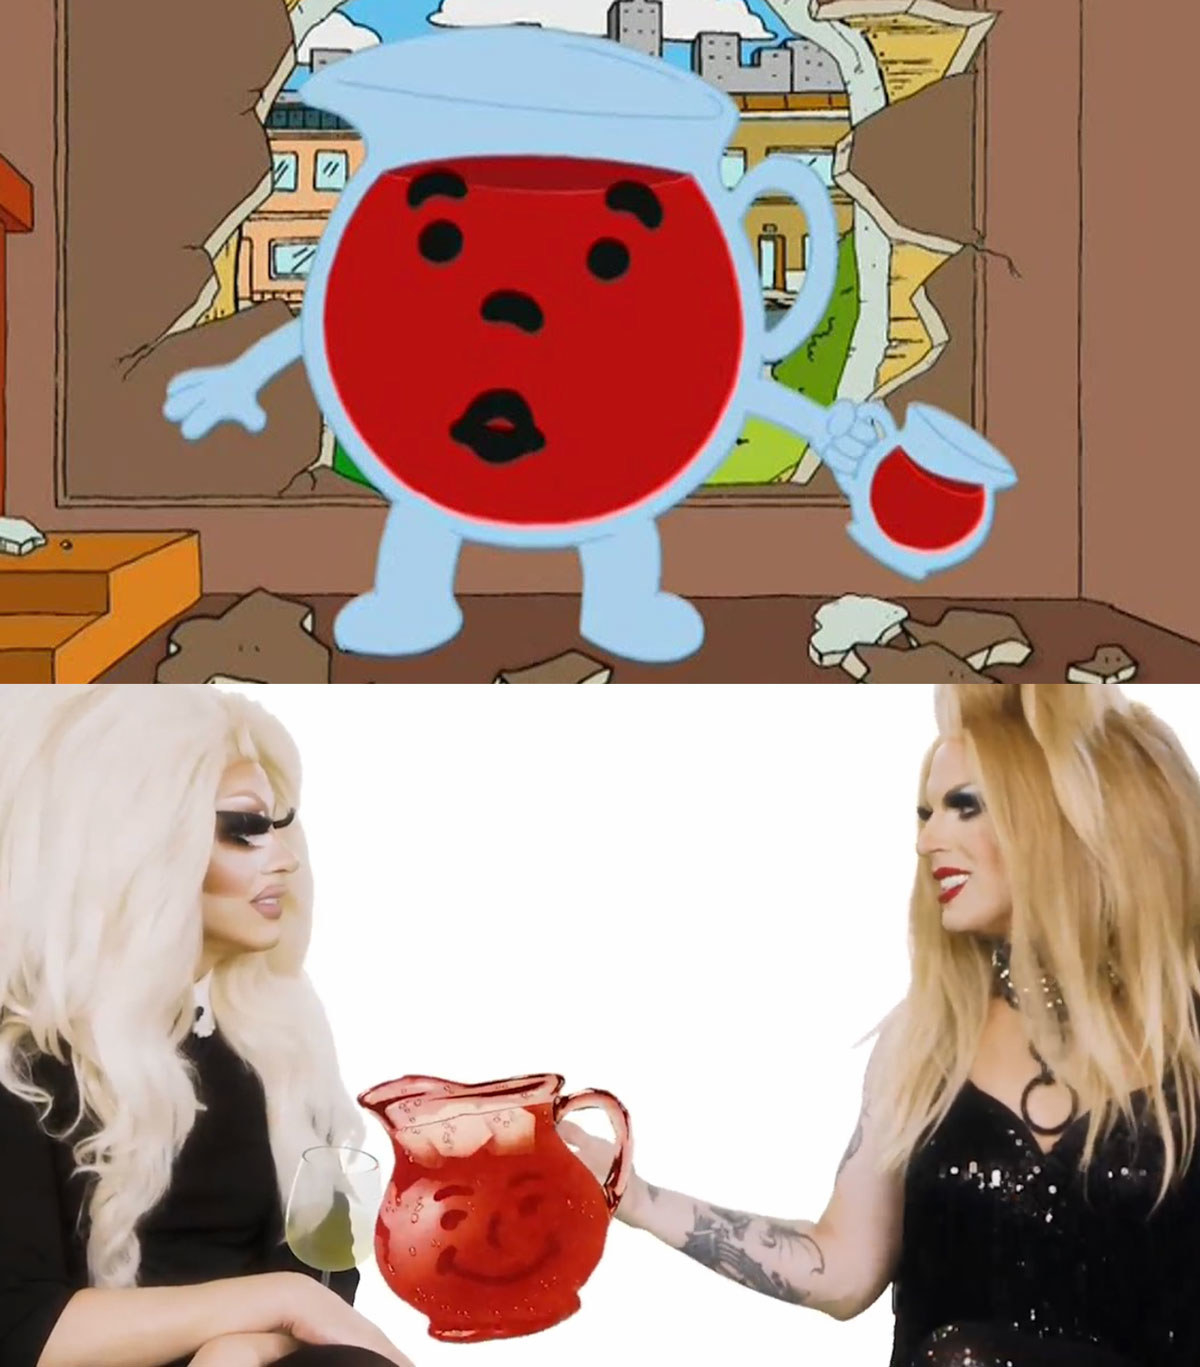 A split image showing the kool aid mascot bursting through a building in family guy and the mascot again in webseries unhhhh he is a big red pitcher with a smiley face